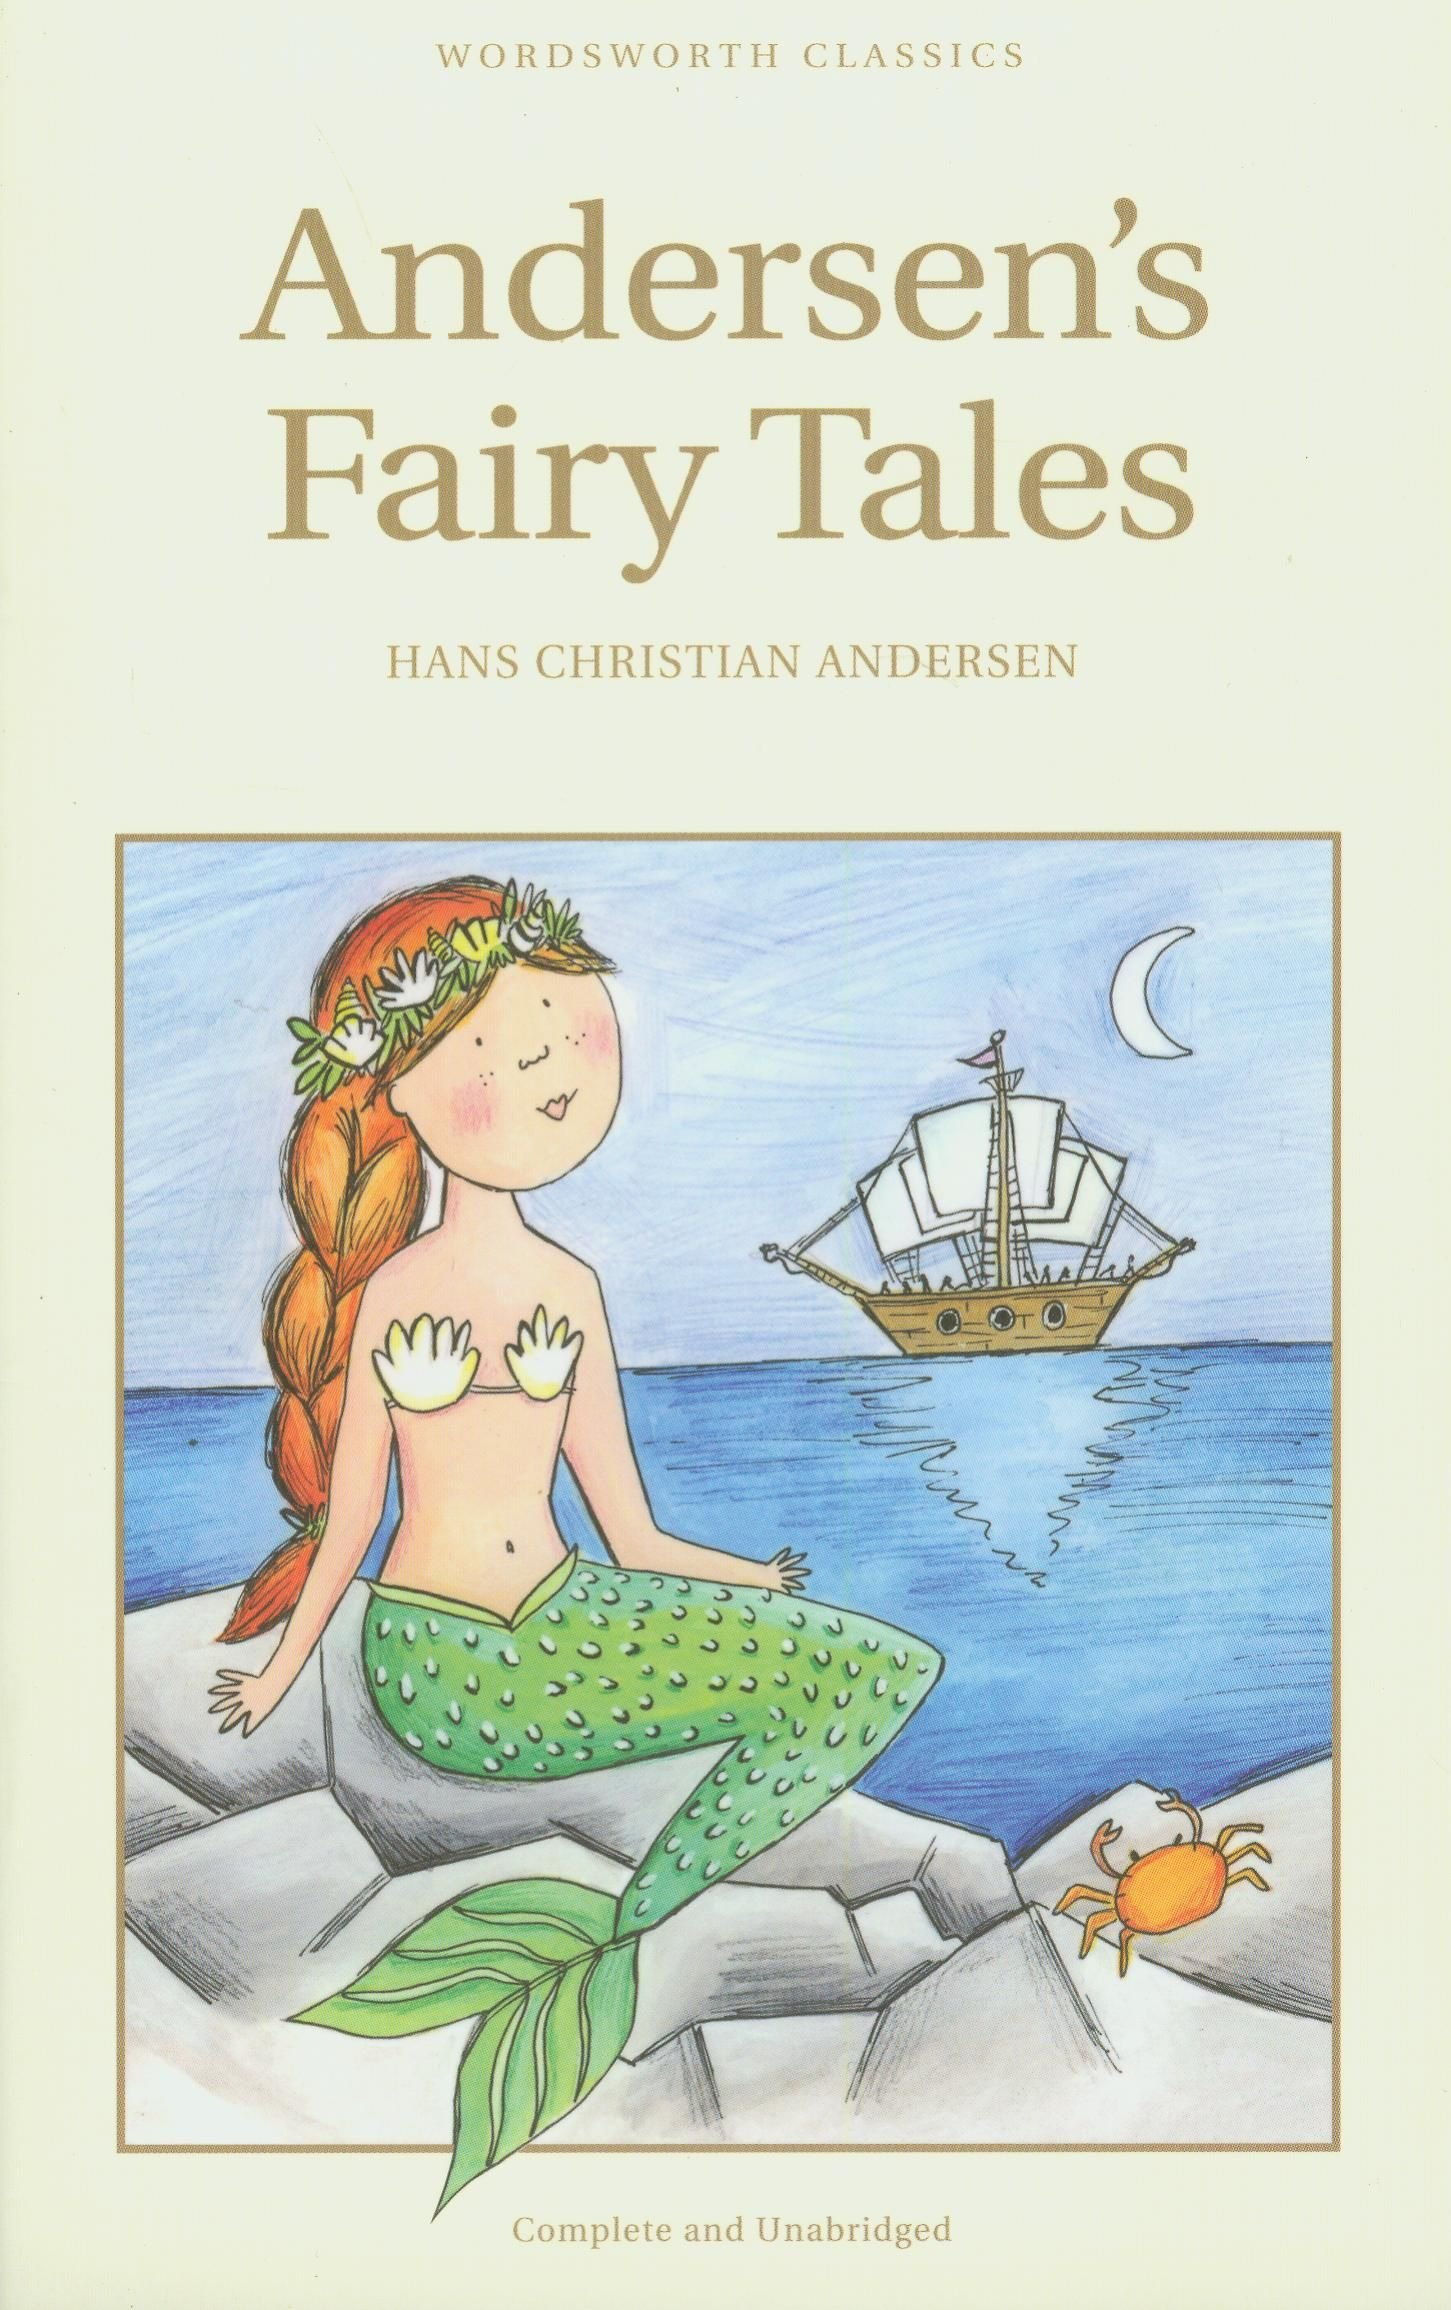 Hans Christian Andersen's Fairy Tales - One of the world's top translated books